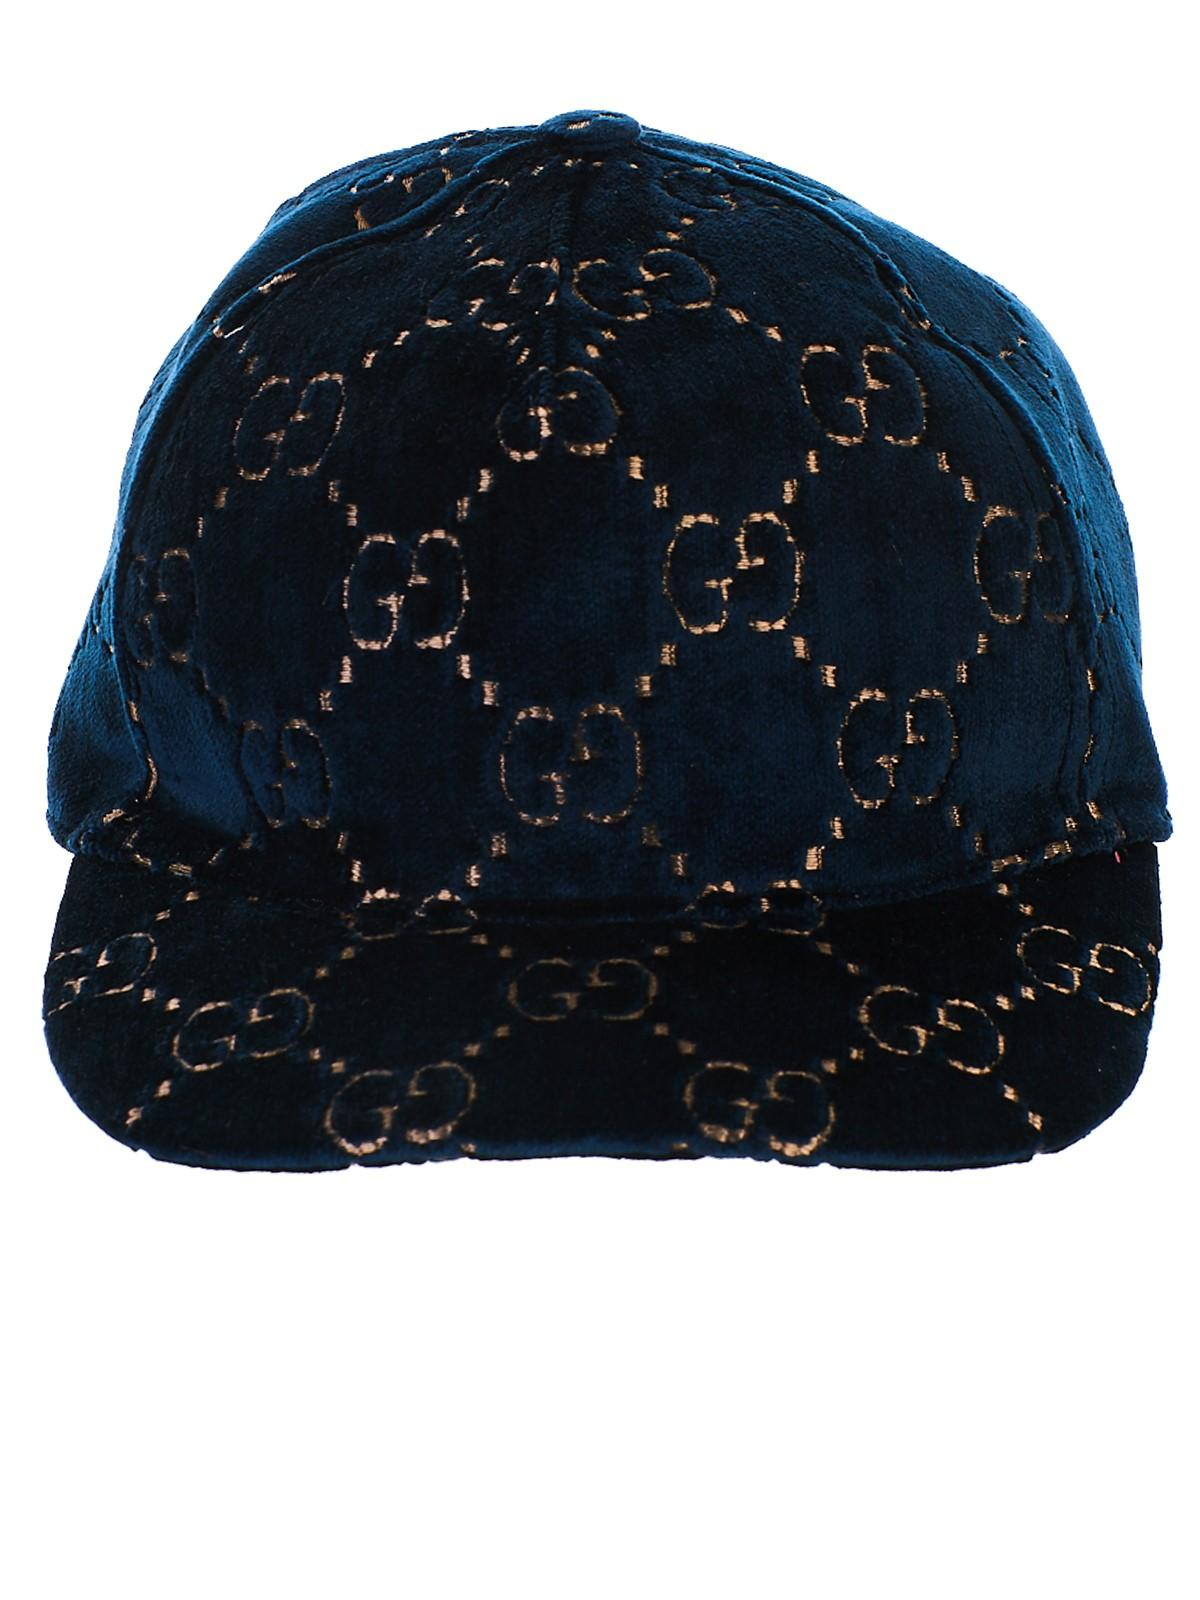 a7196f5d694 Lyst - Gucci Blue Hat in Blue